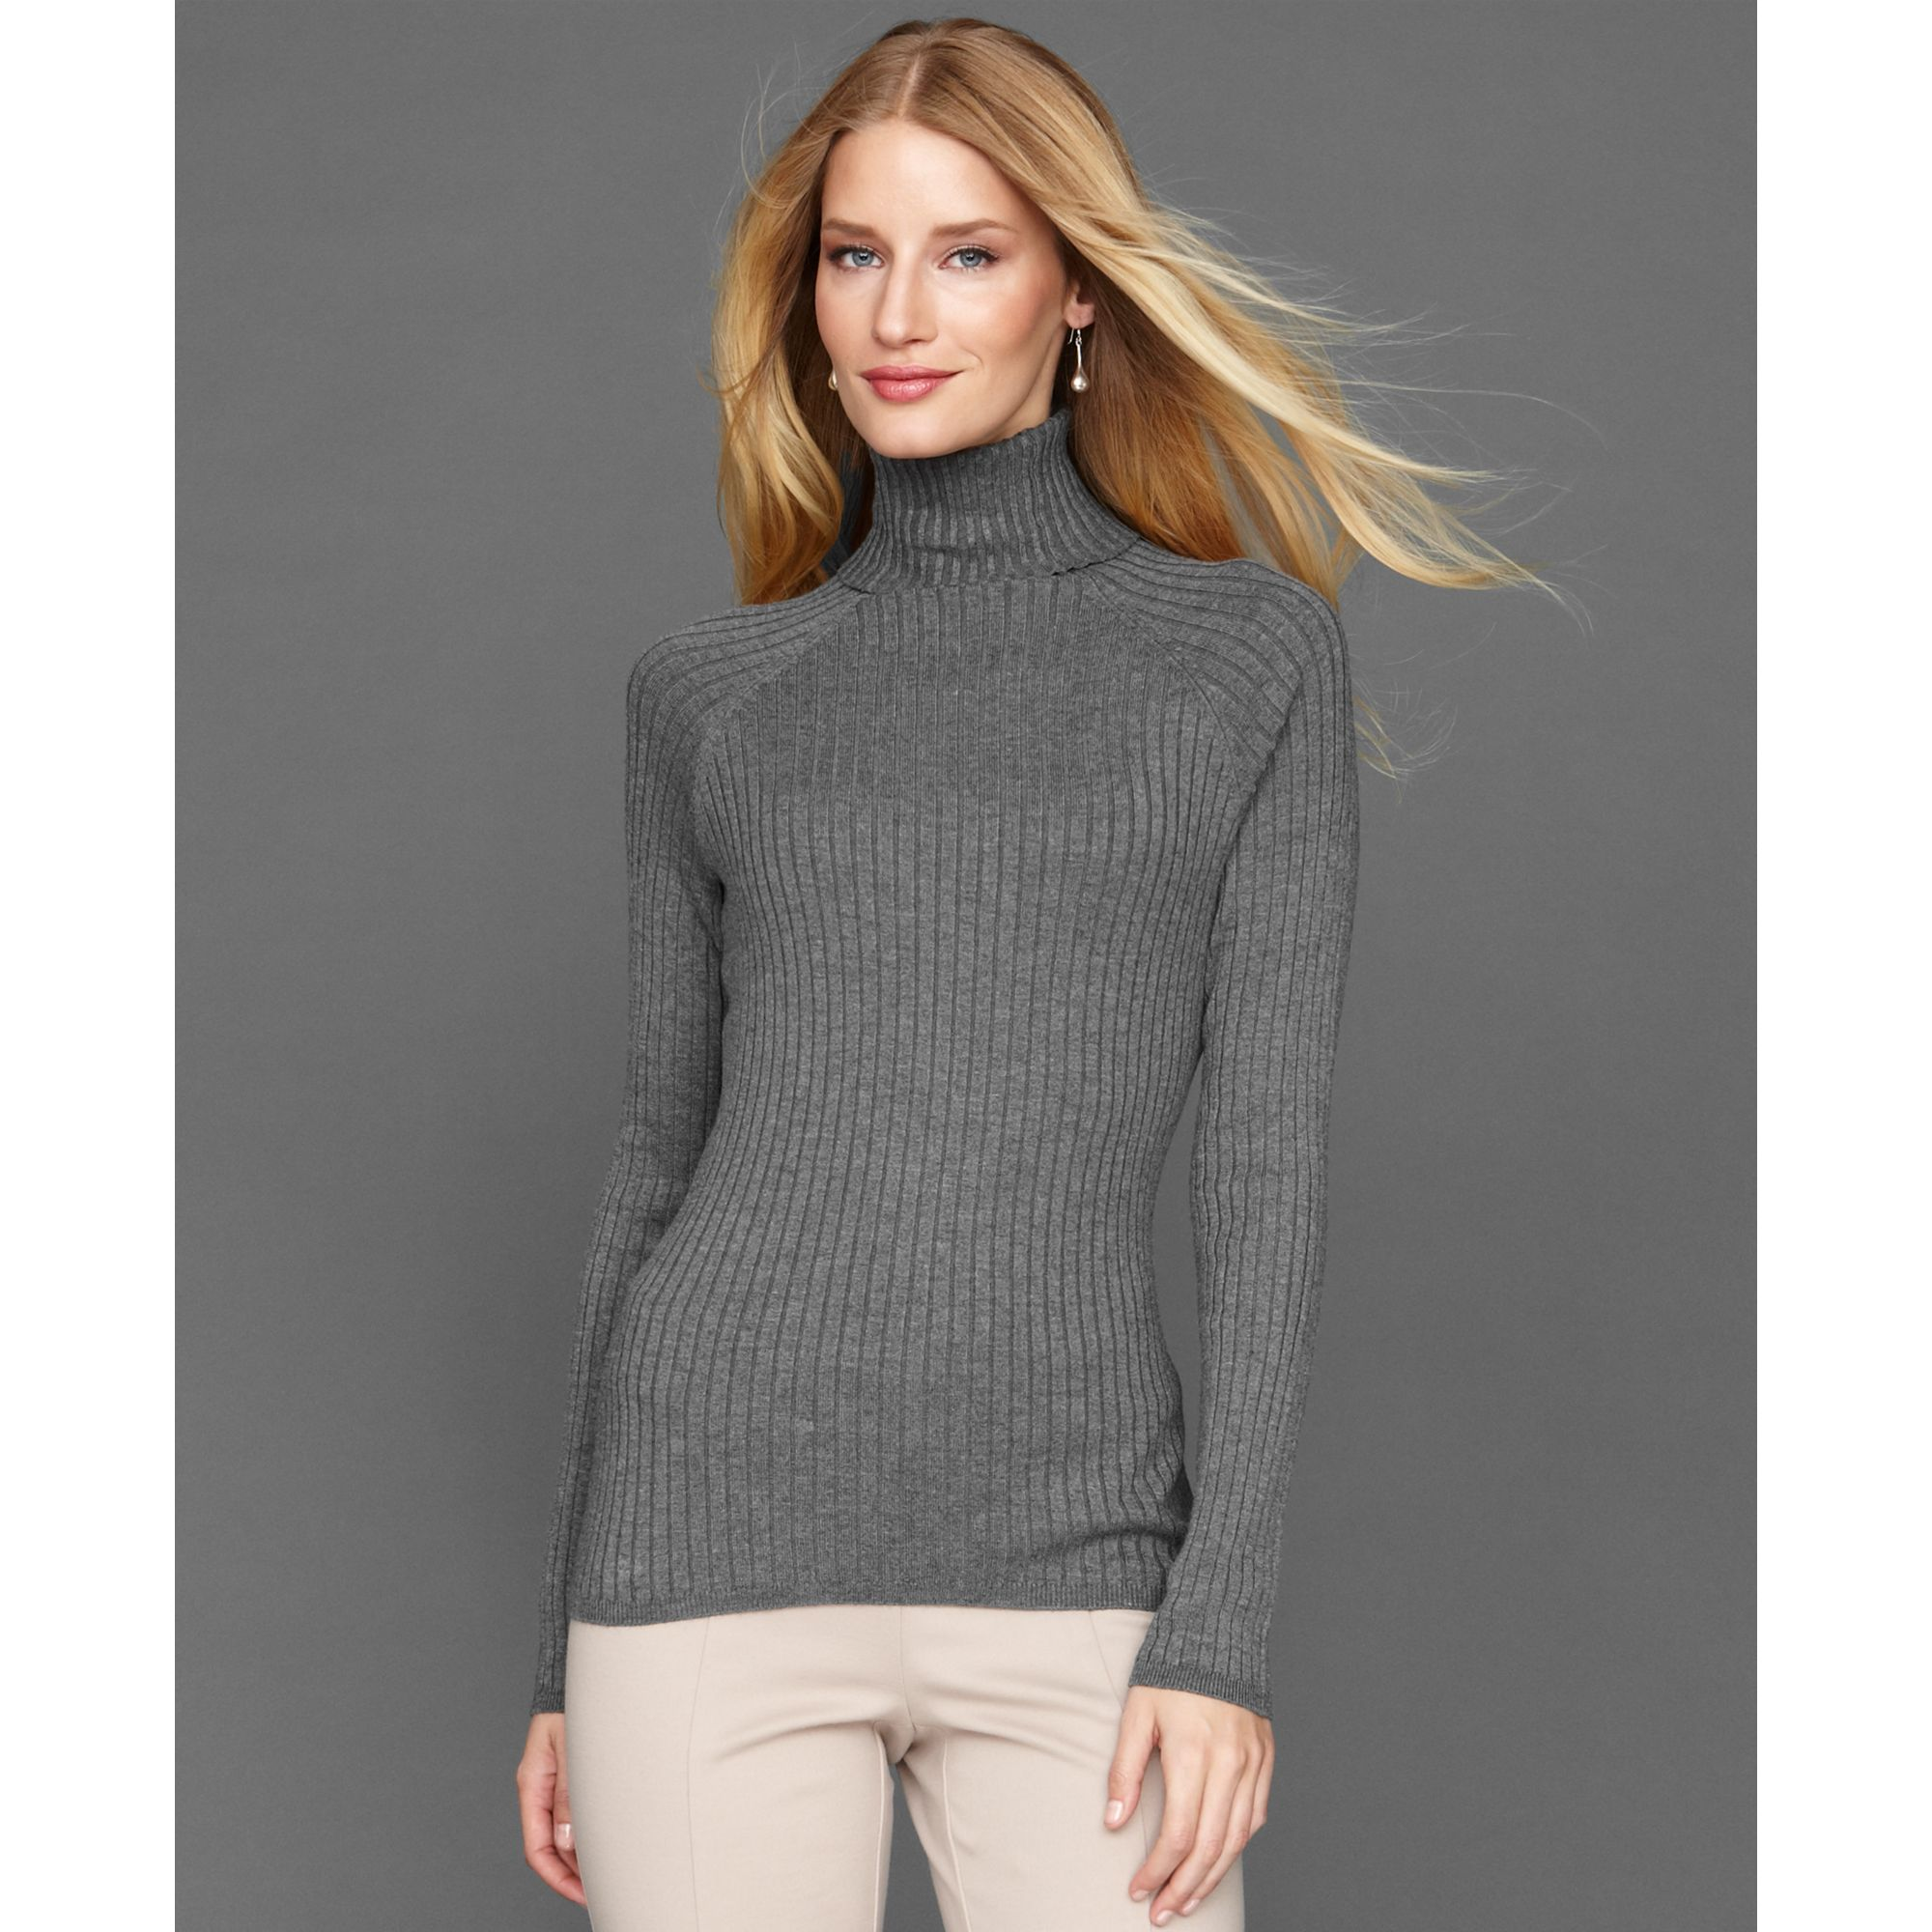 Inc international concepts Long Sleeve Ribbed Turtleneck in Gray ...